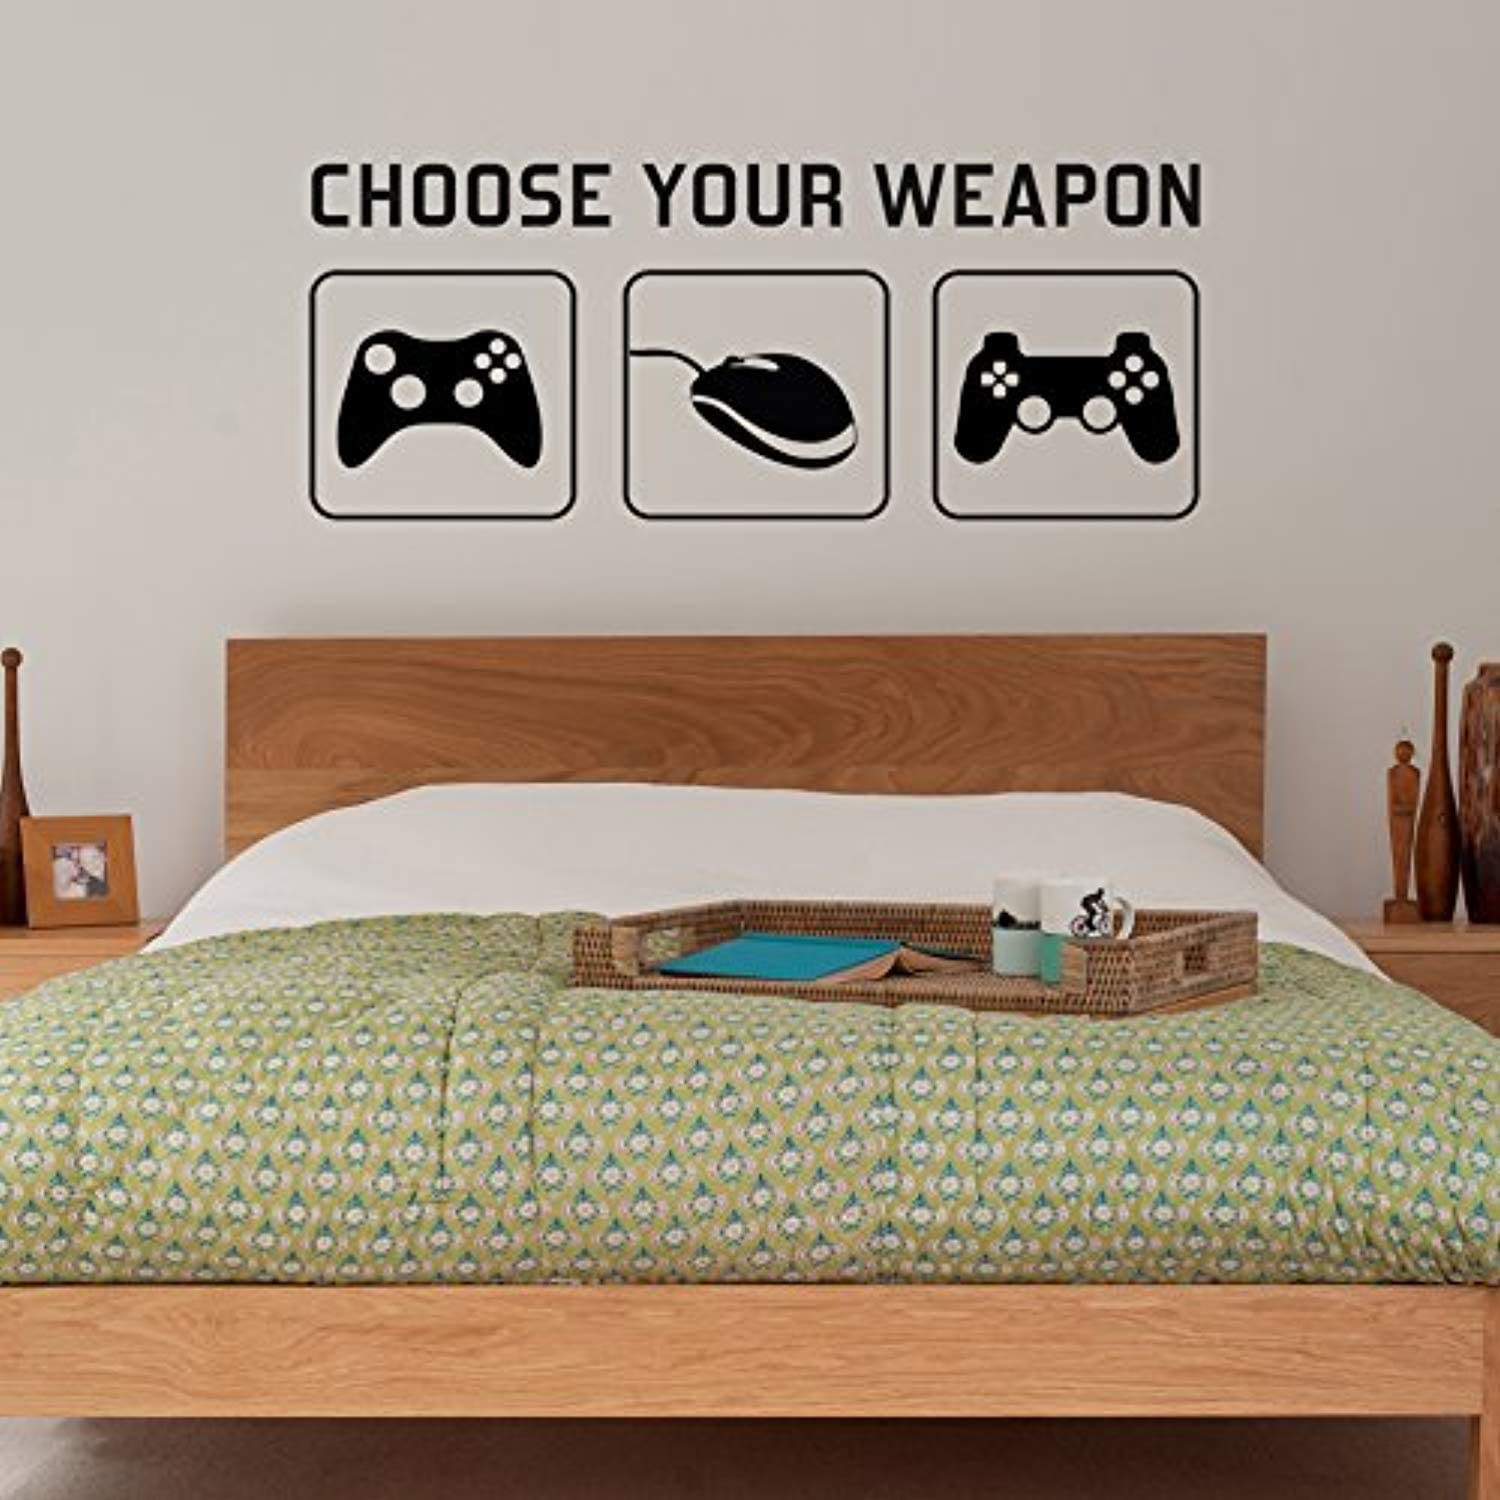 Amazon Com Wall Vinyl Decal Your Weapon Video Game Gaming Mural Kids Children Teenager Teens Bedroom Man Cave Room Ideas Canvas Home Controllers Decor Sticker Art Print Tt10003